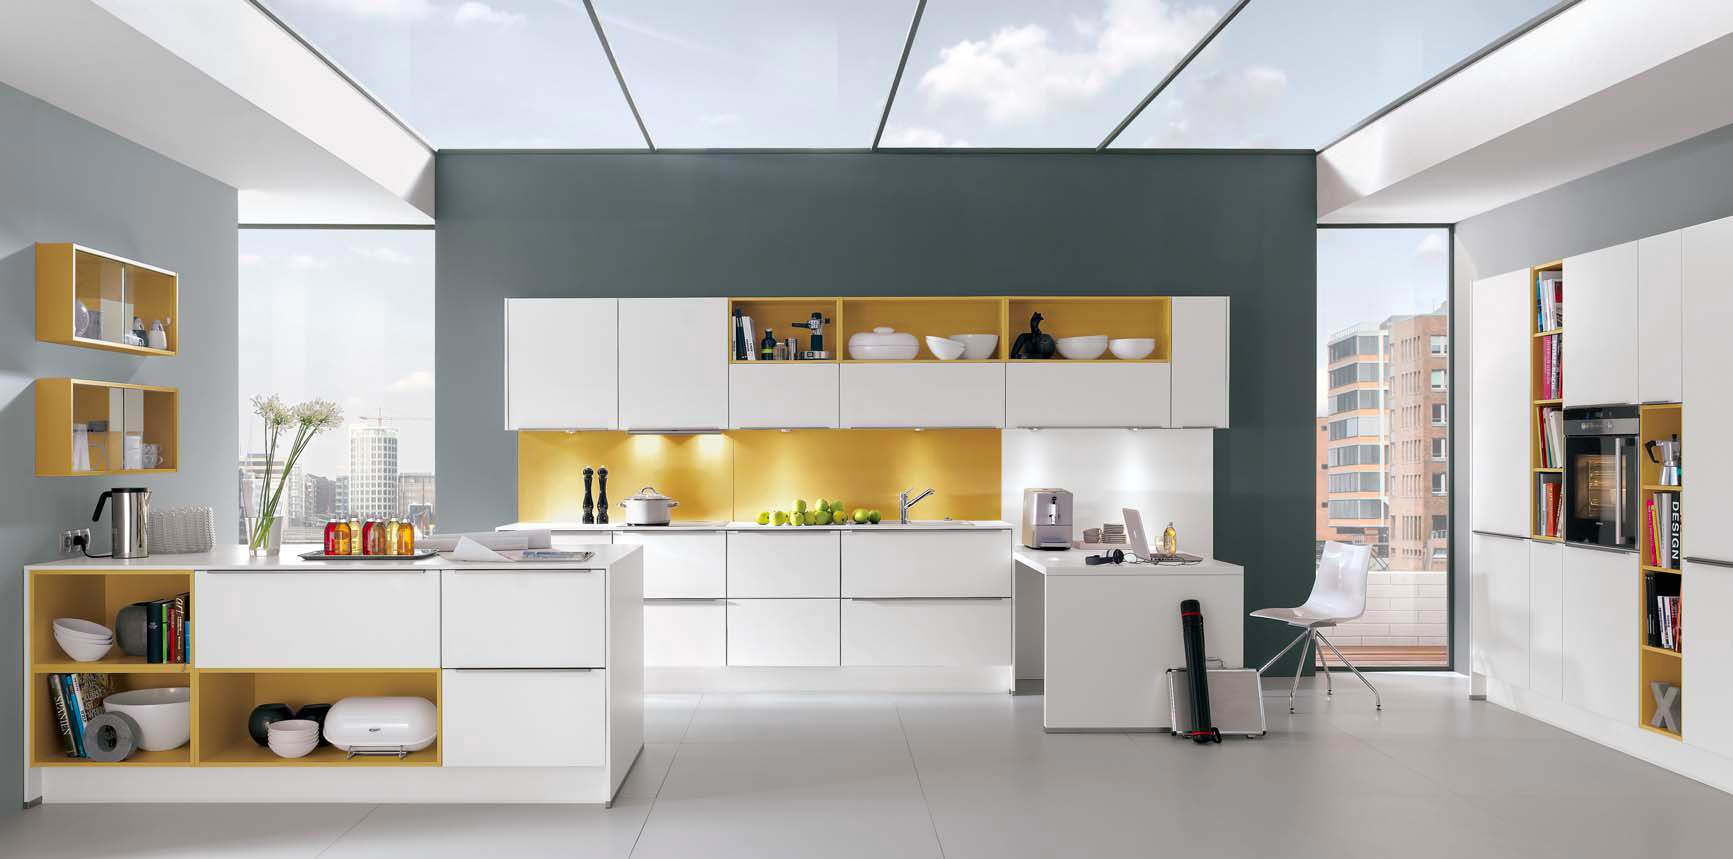 White kitchen on grey wall, with melon highlights